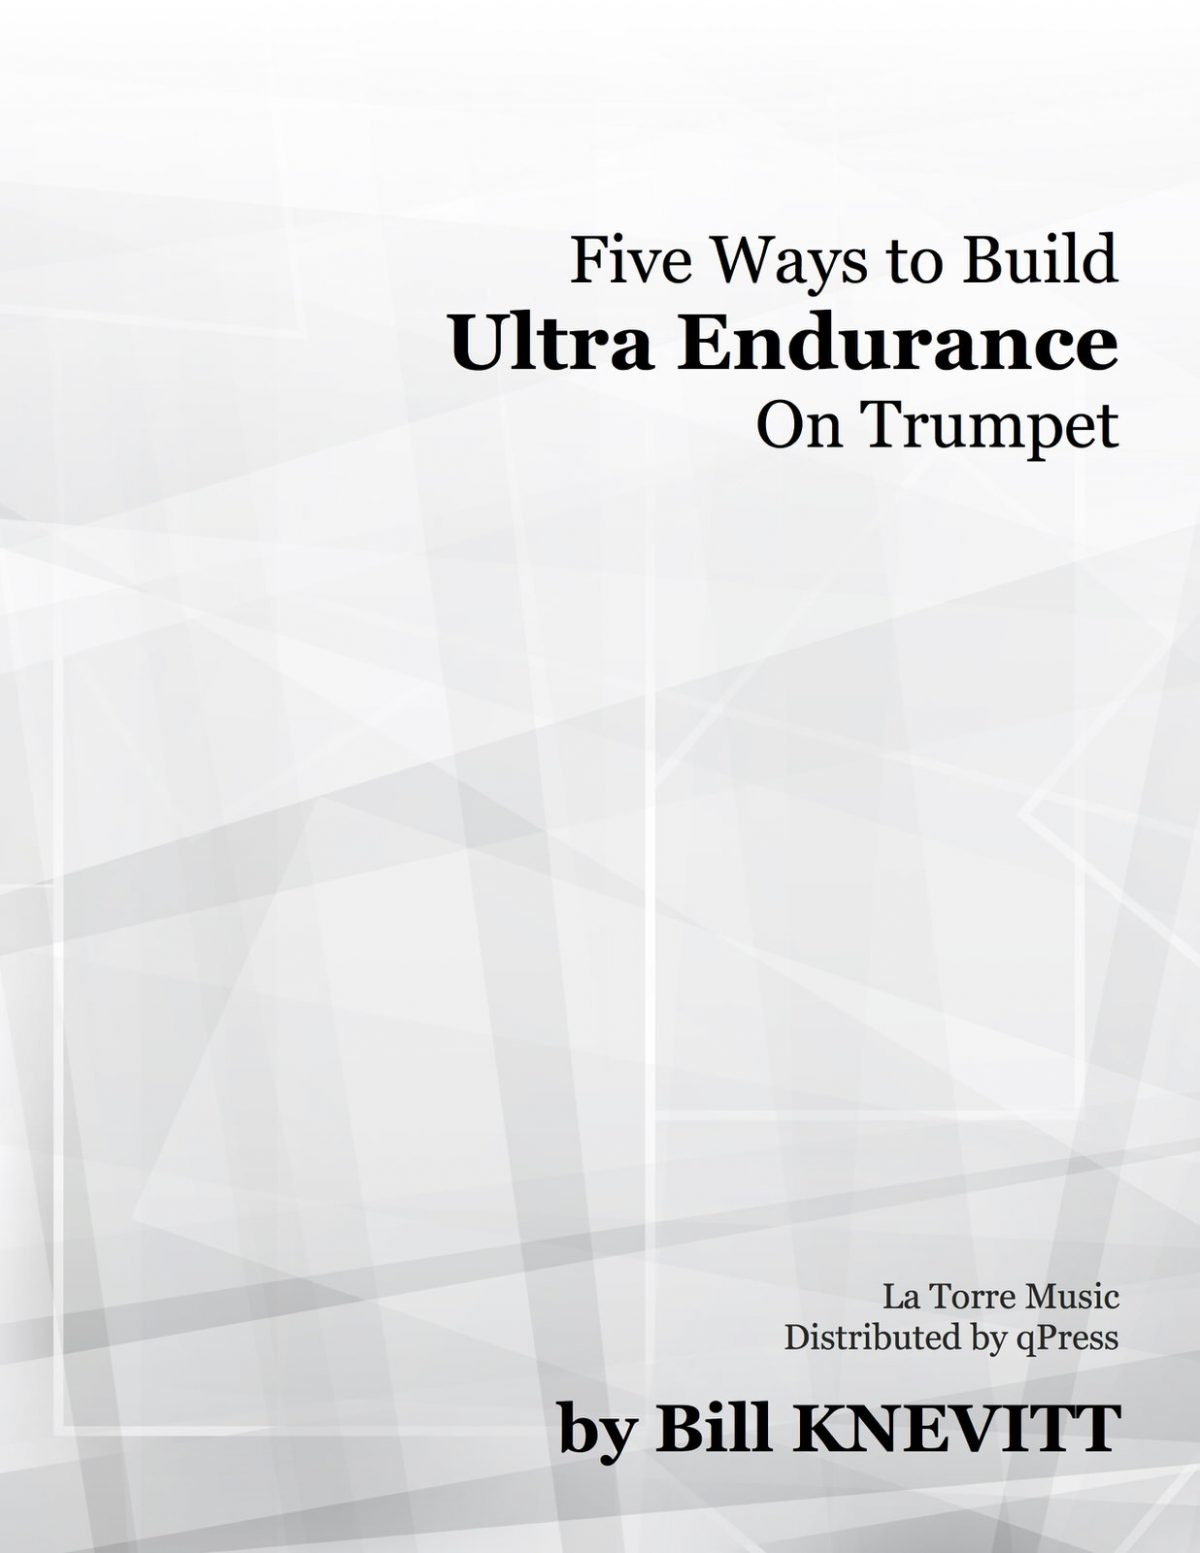 knevitt-five-ways-to-build-ultra-endurance-on-trumpet